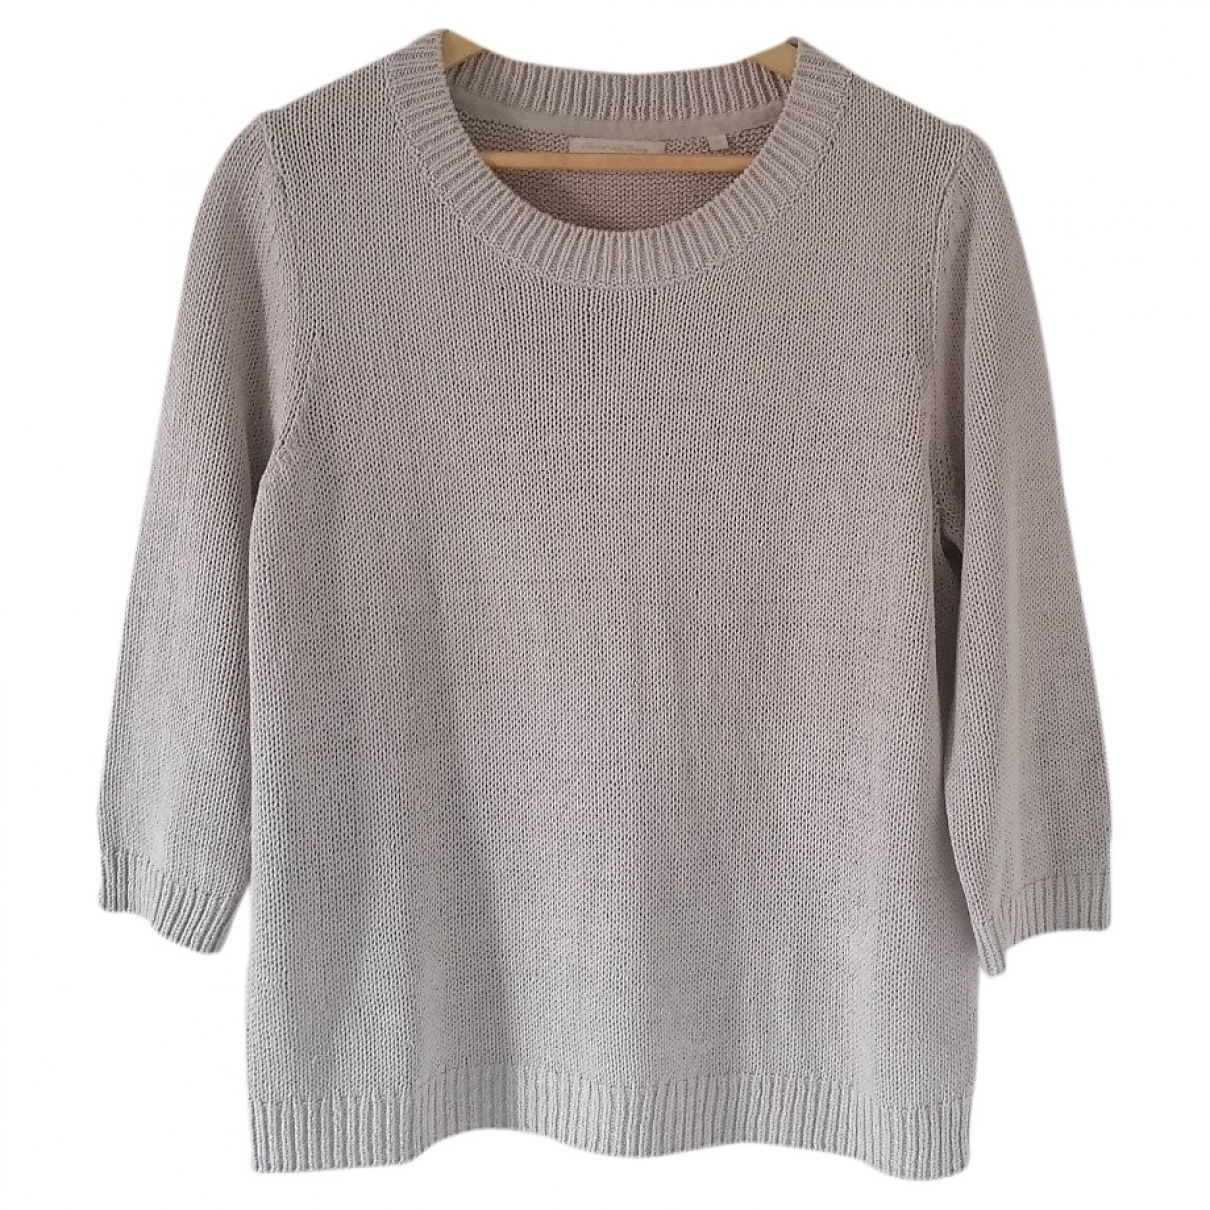 Non Signé / Unsigned \N Grey Cotton  top for Women 42 IT